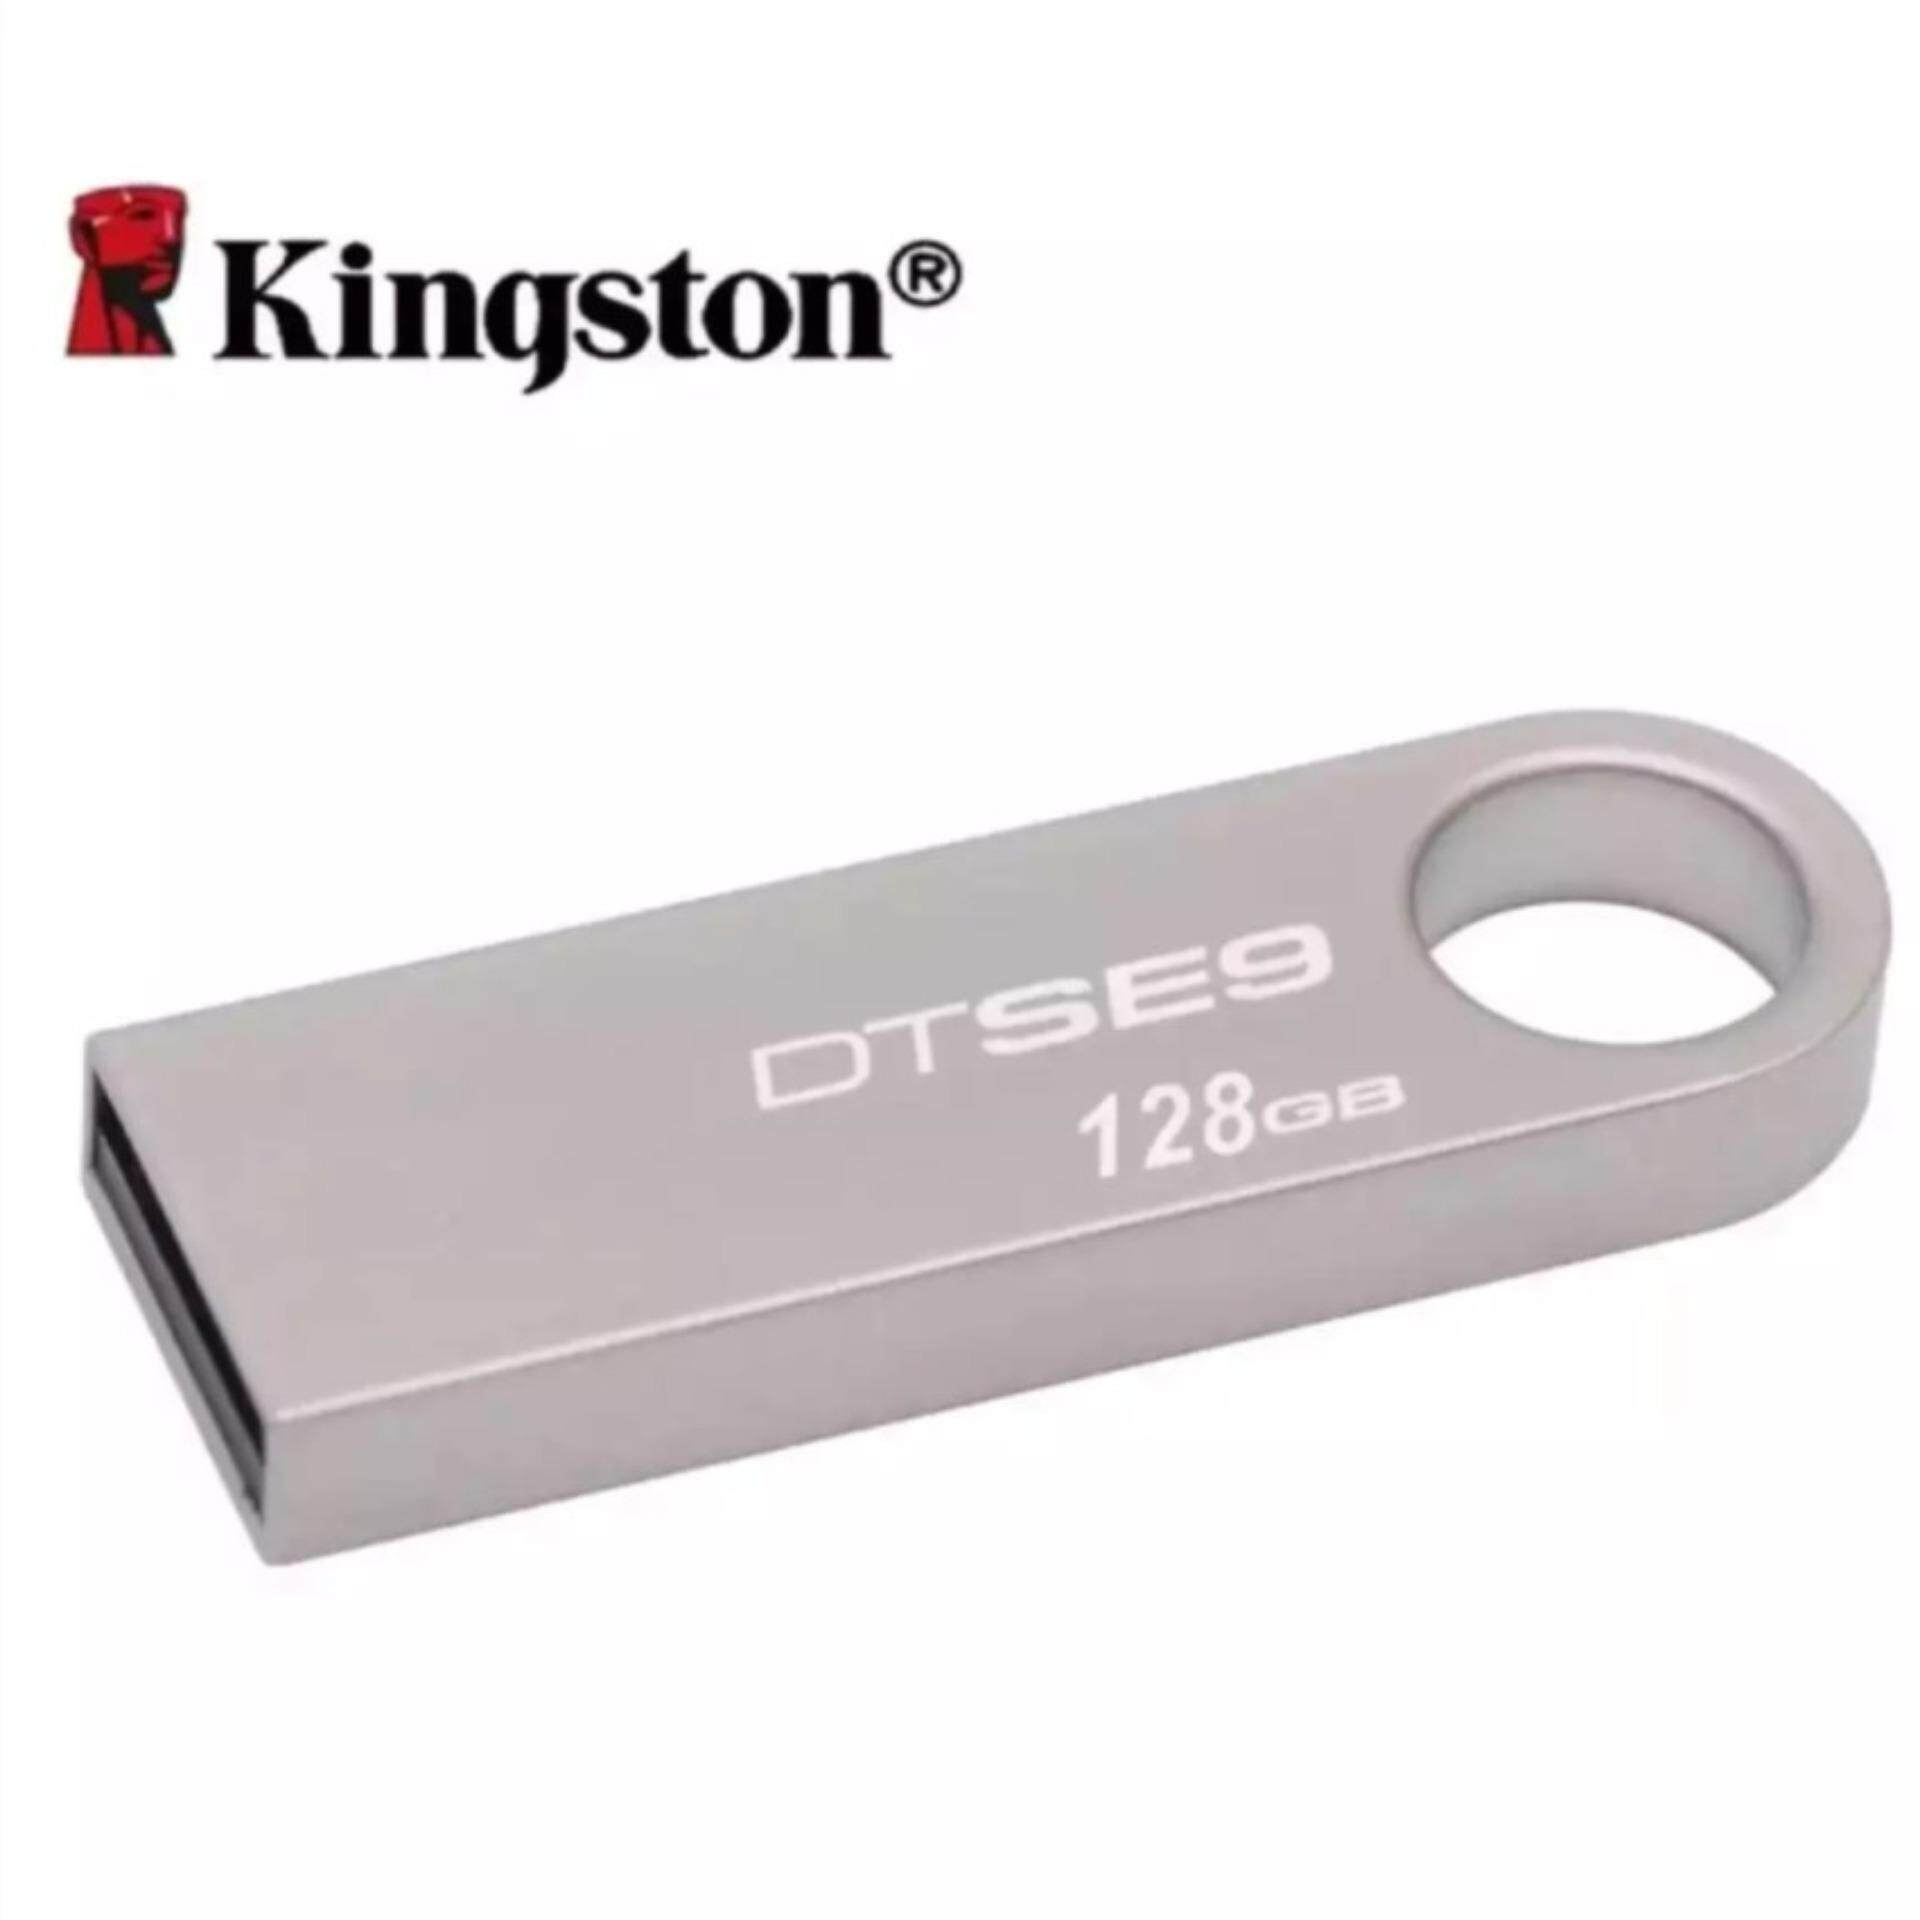 Kingston Data Traveler SE9 - 128GB